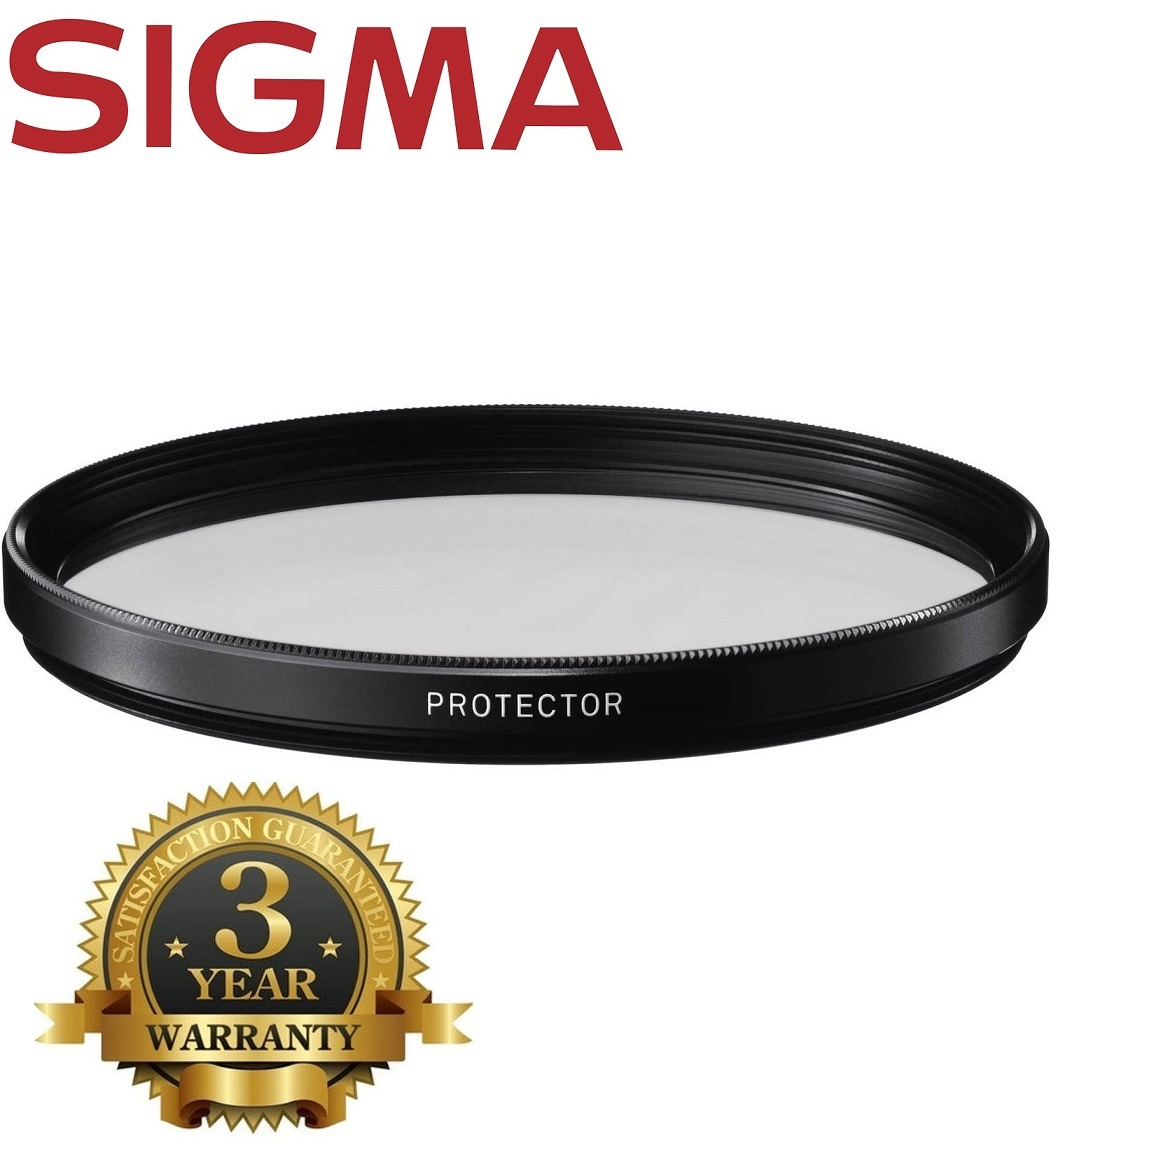 Sigma 58mm WR Protector Filter